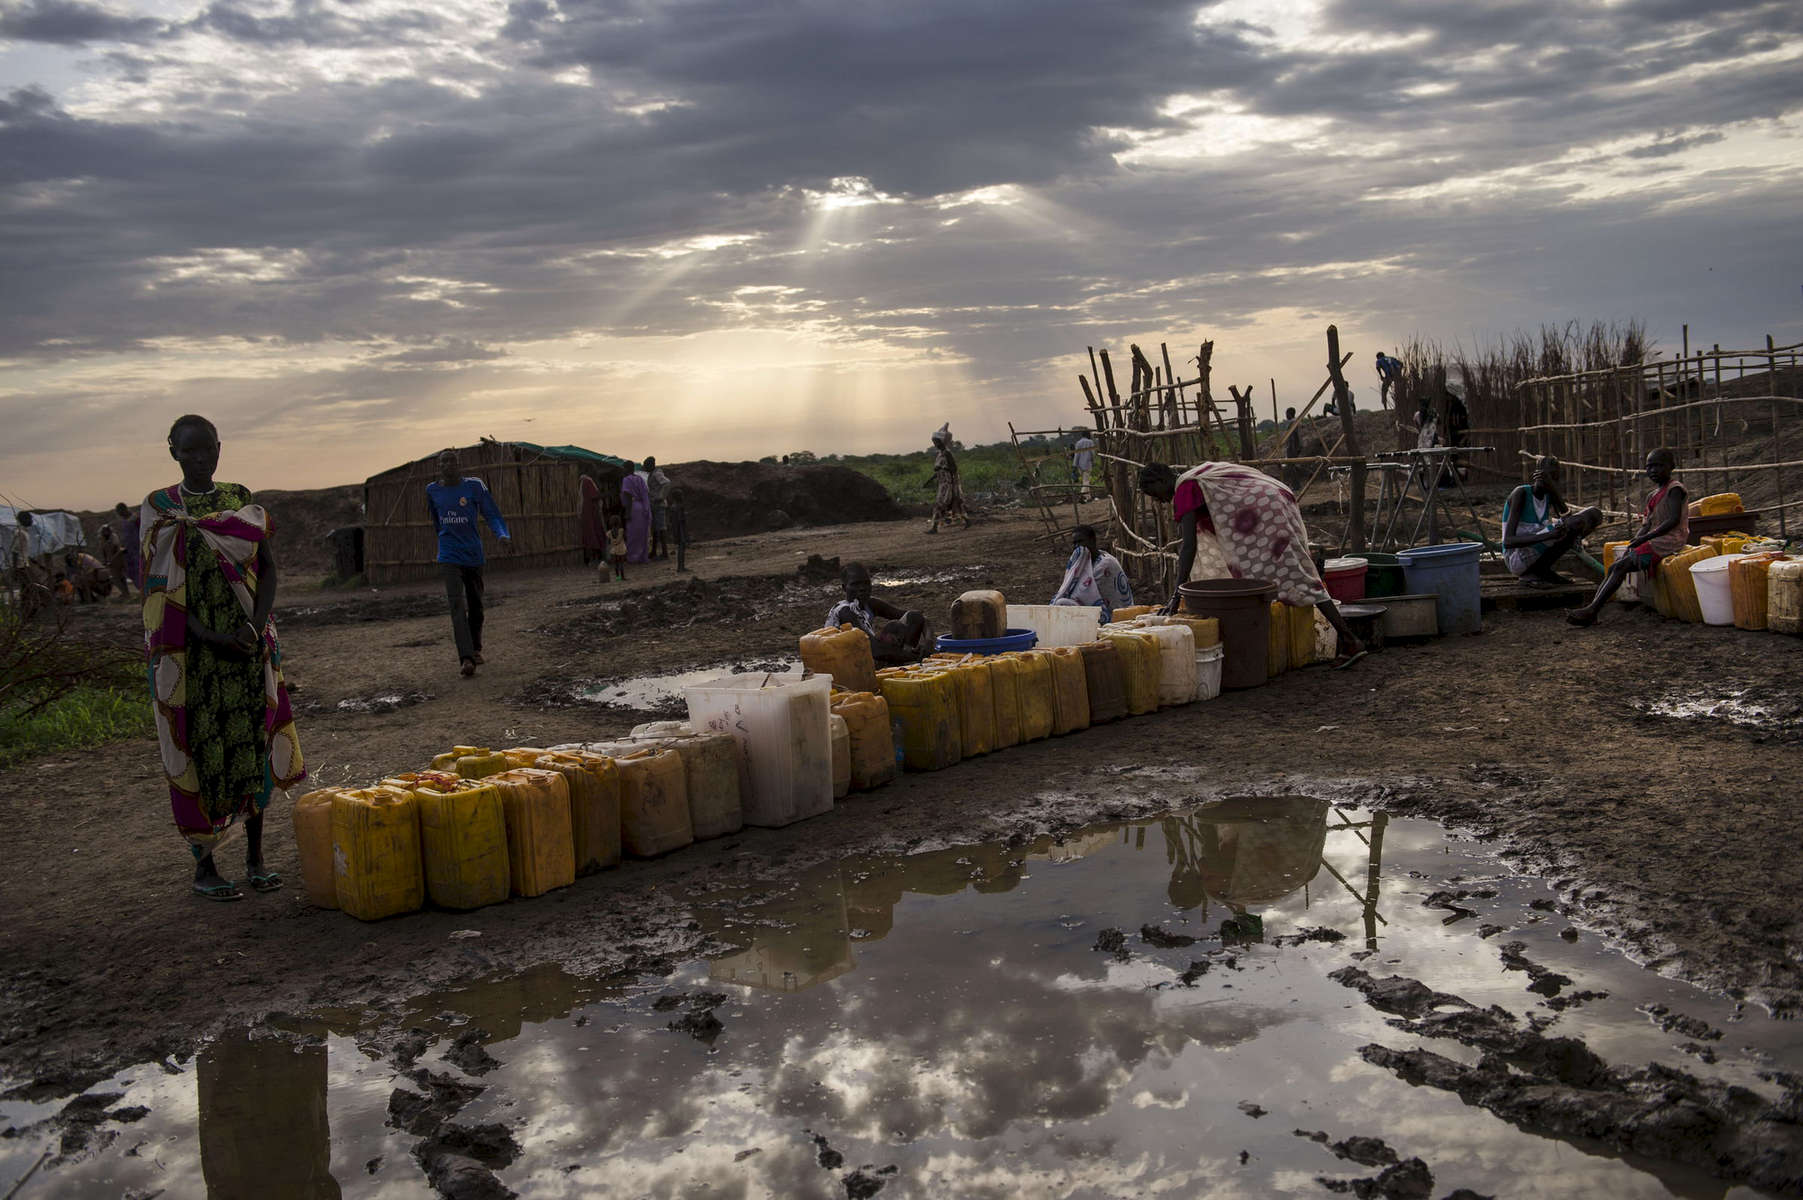 Internally displaced people wait for a water at dawn at the base of the United Nations Mission in South Sudan in Bentiu, South Sudan, May 4, 2014.  IDPs living at the UNMISS camp in Bentiu face a limited supply of water, and are living in highly unsanitary conditions, where raw sewage flows openly throughout the camp, and children have high rates of diarrhea and skin ailments frequently caused by exposure to tainted water. Over twenty thousand IDPs live at the UNMISS base in Bentiu, and one million Southern Sudanese have been displaced from their homes as the civil war rages in the country, pitting ethnic Nu'er against Dinka.  The United Nations has scrambled to provide unprecedented safe havens for civilians inside their camps, but funding to provide for this emergency situation has been limited.  (Credit: Lynsey Addario)